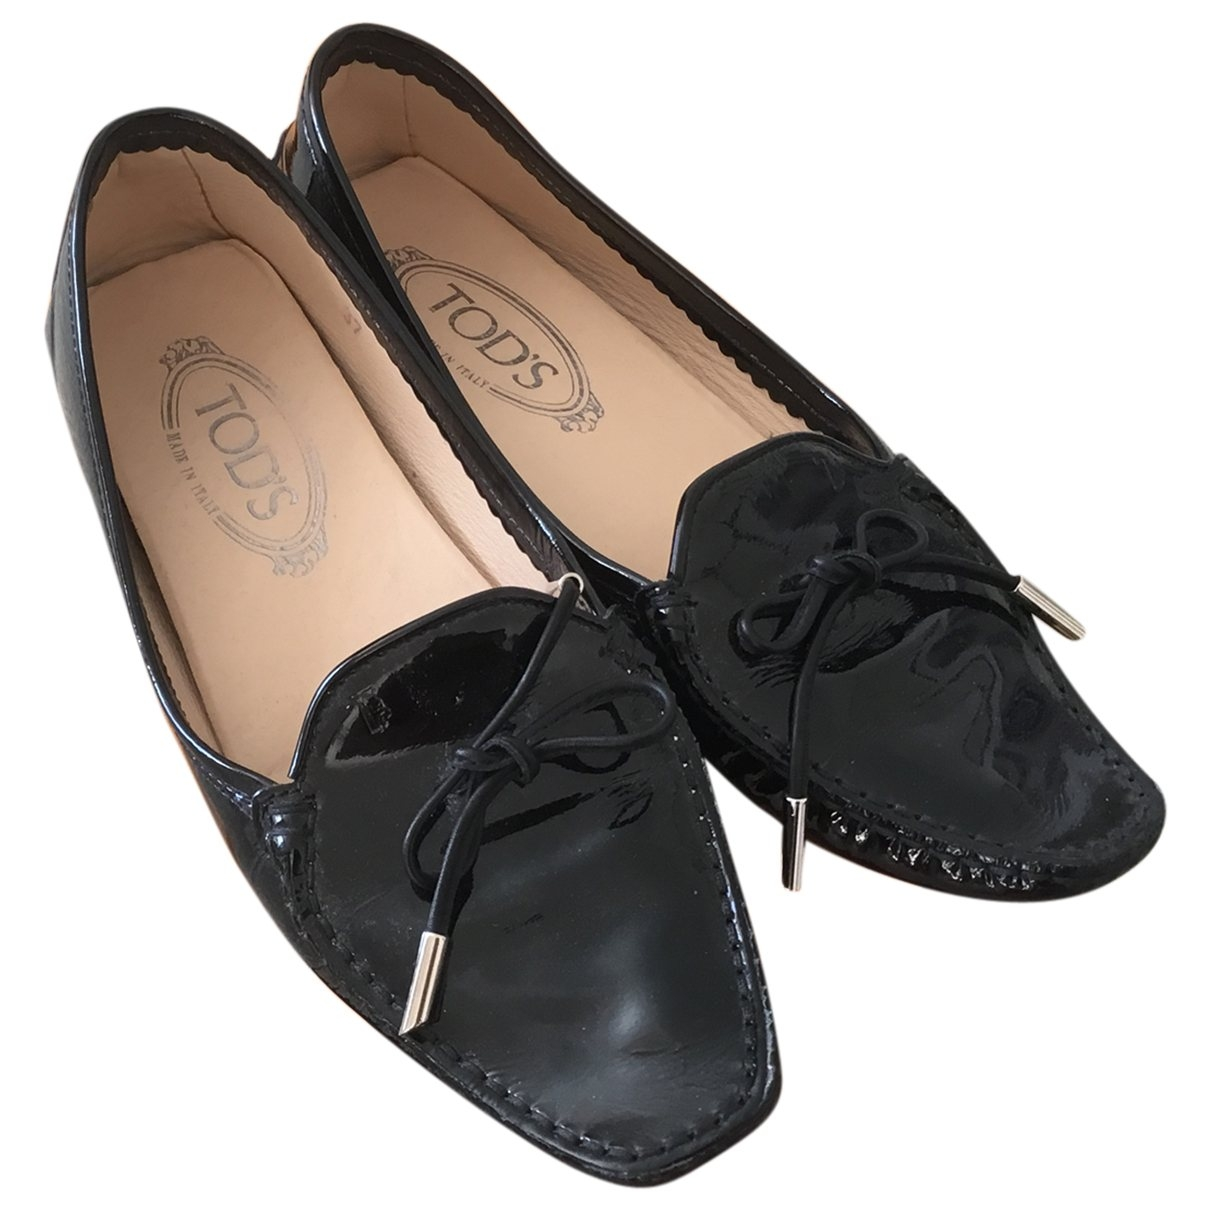 Tod's \N Black Patent leather Flats for Women 37 EU